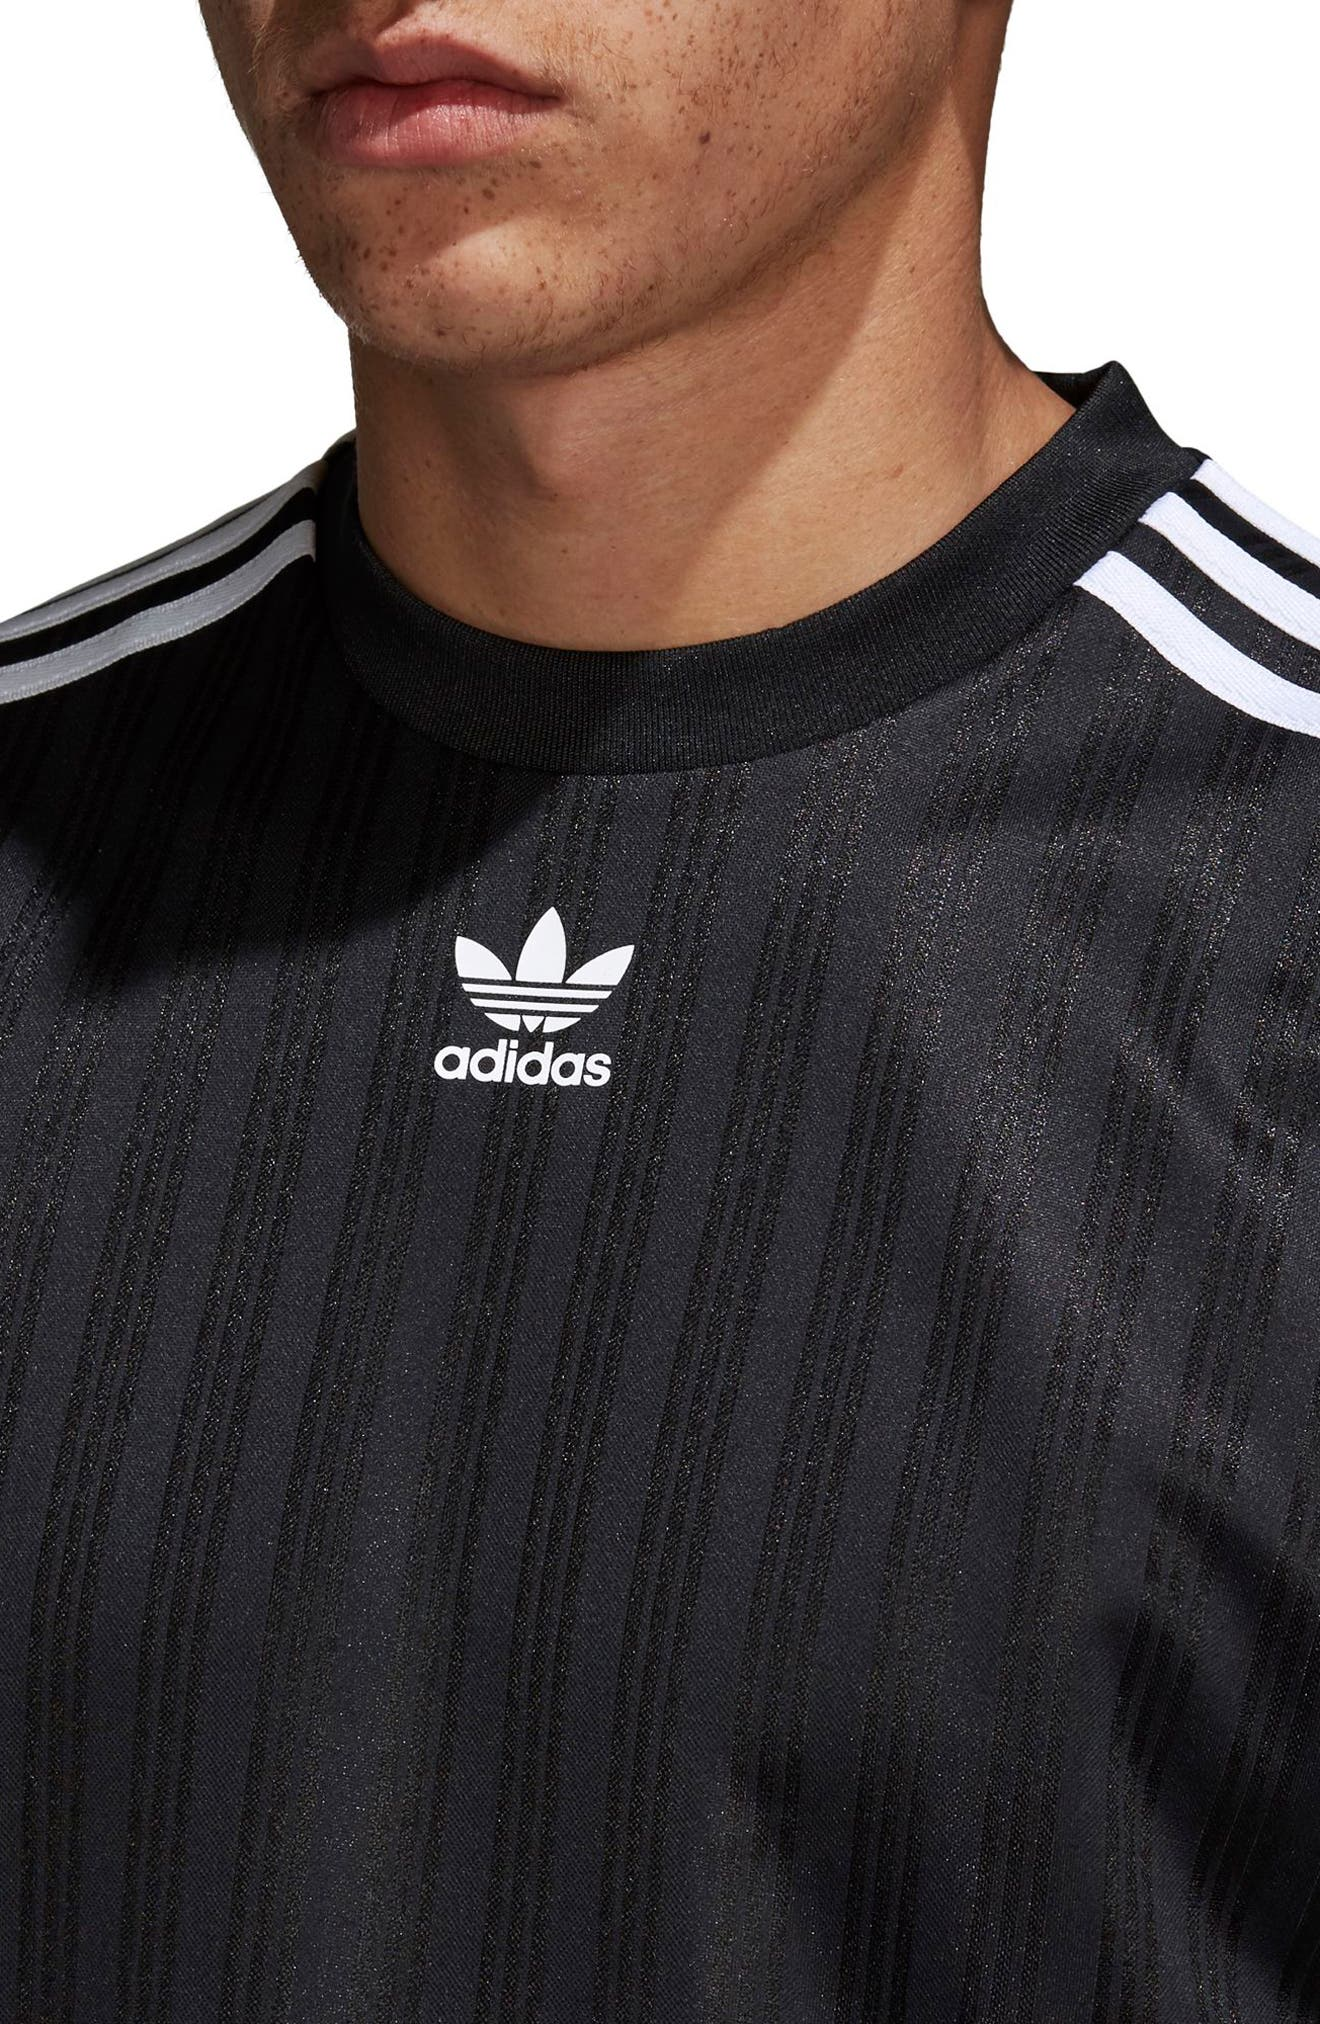 ADIDAS ORIGINALS,                             Long Sleeve Jersey Shirt,                             Alternate thumbnail 4, color,                             001